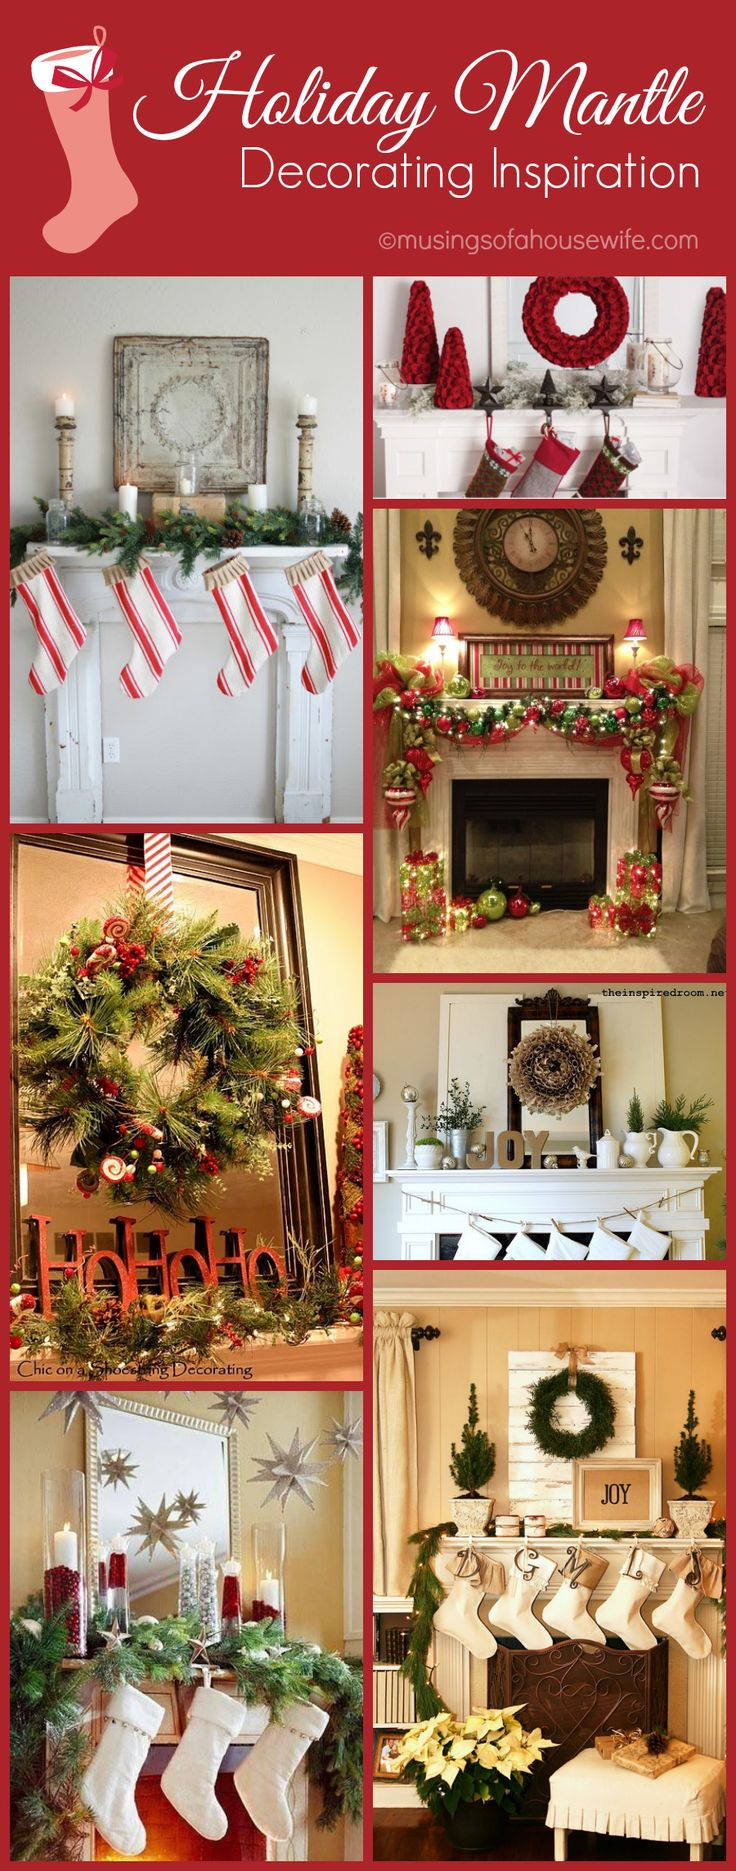 These are lovely! Mantle decorating ideas fro @Jo-Lynne ShaneChristmas Mantles Decorations, Wreaths Attached, Mantle Decorating, Christmas Decor Mantles, Large Items, Holiday Decor, Vintage Linen, Christmas Mantels, Holiday Mantle